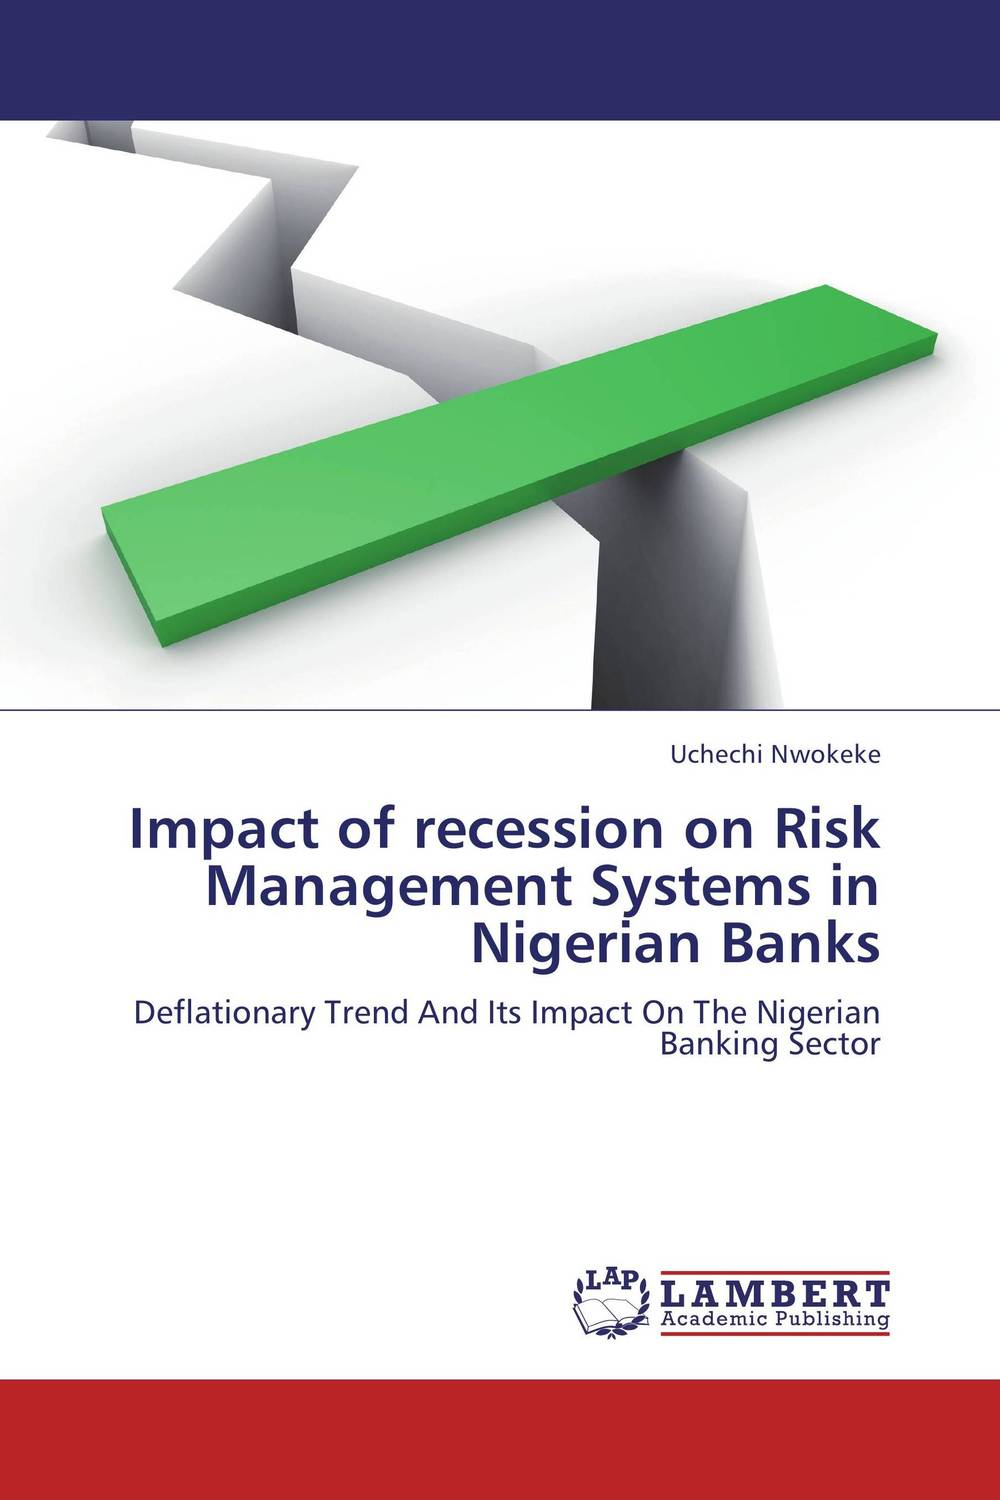 Impact of recession on Risk Management Systems in Nigerian Banks credit risk management practices